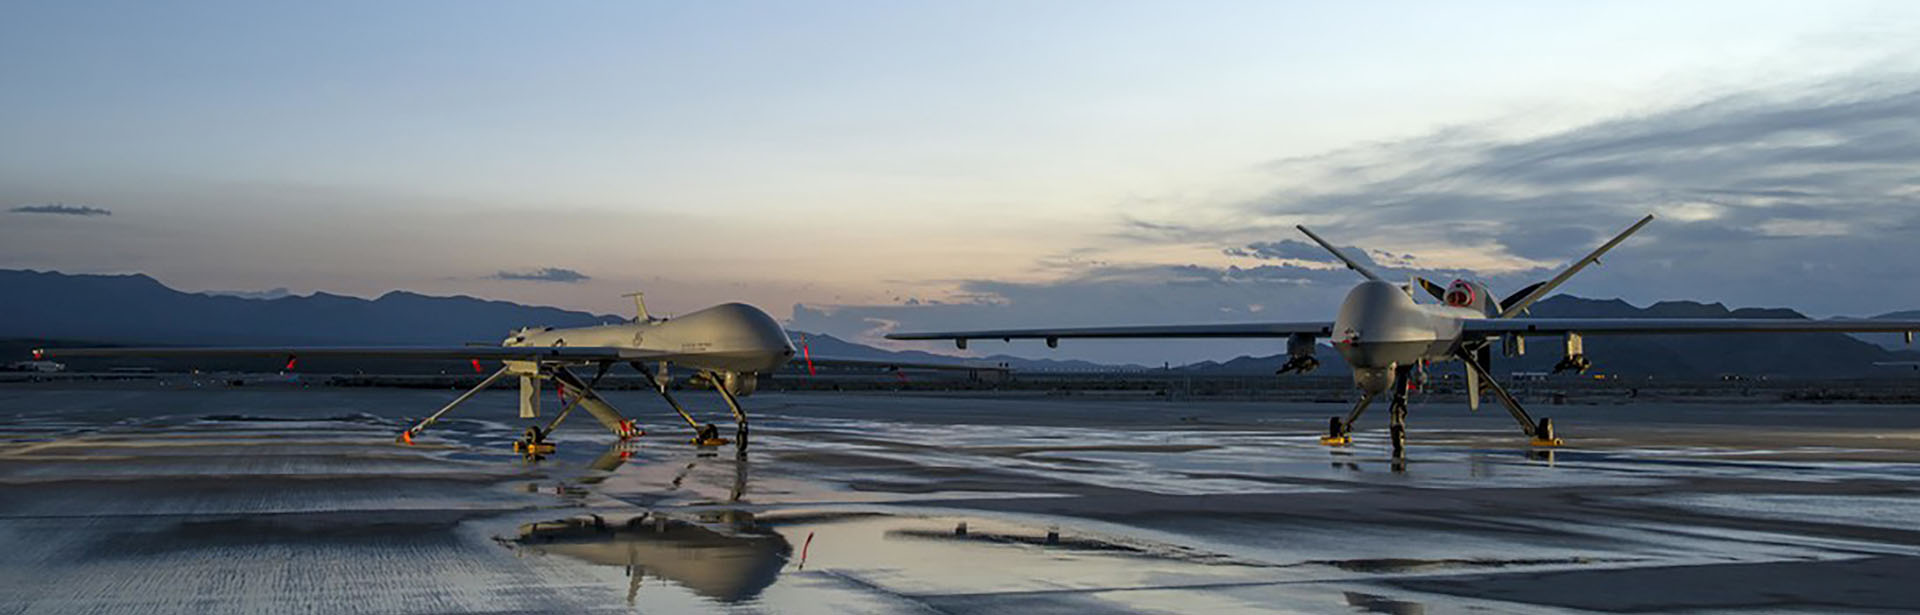 UAVs on the tarmac